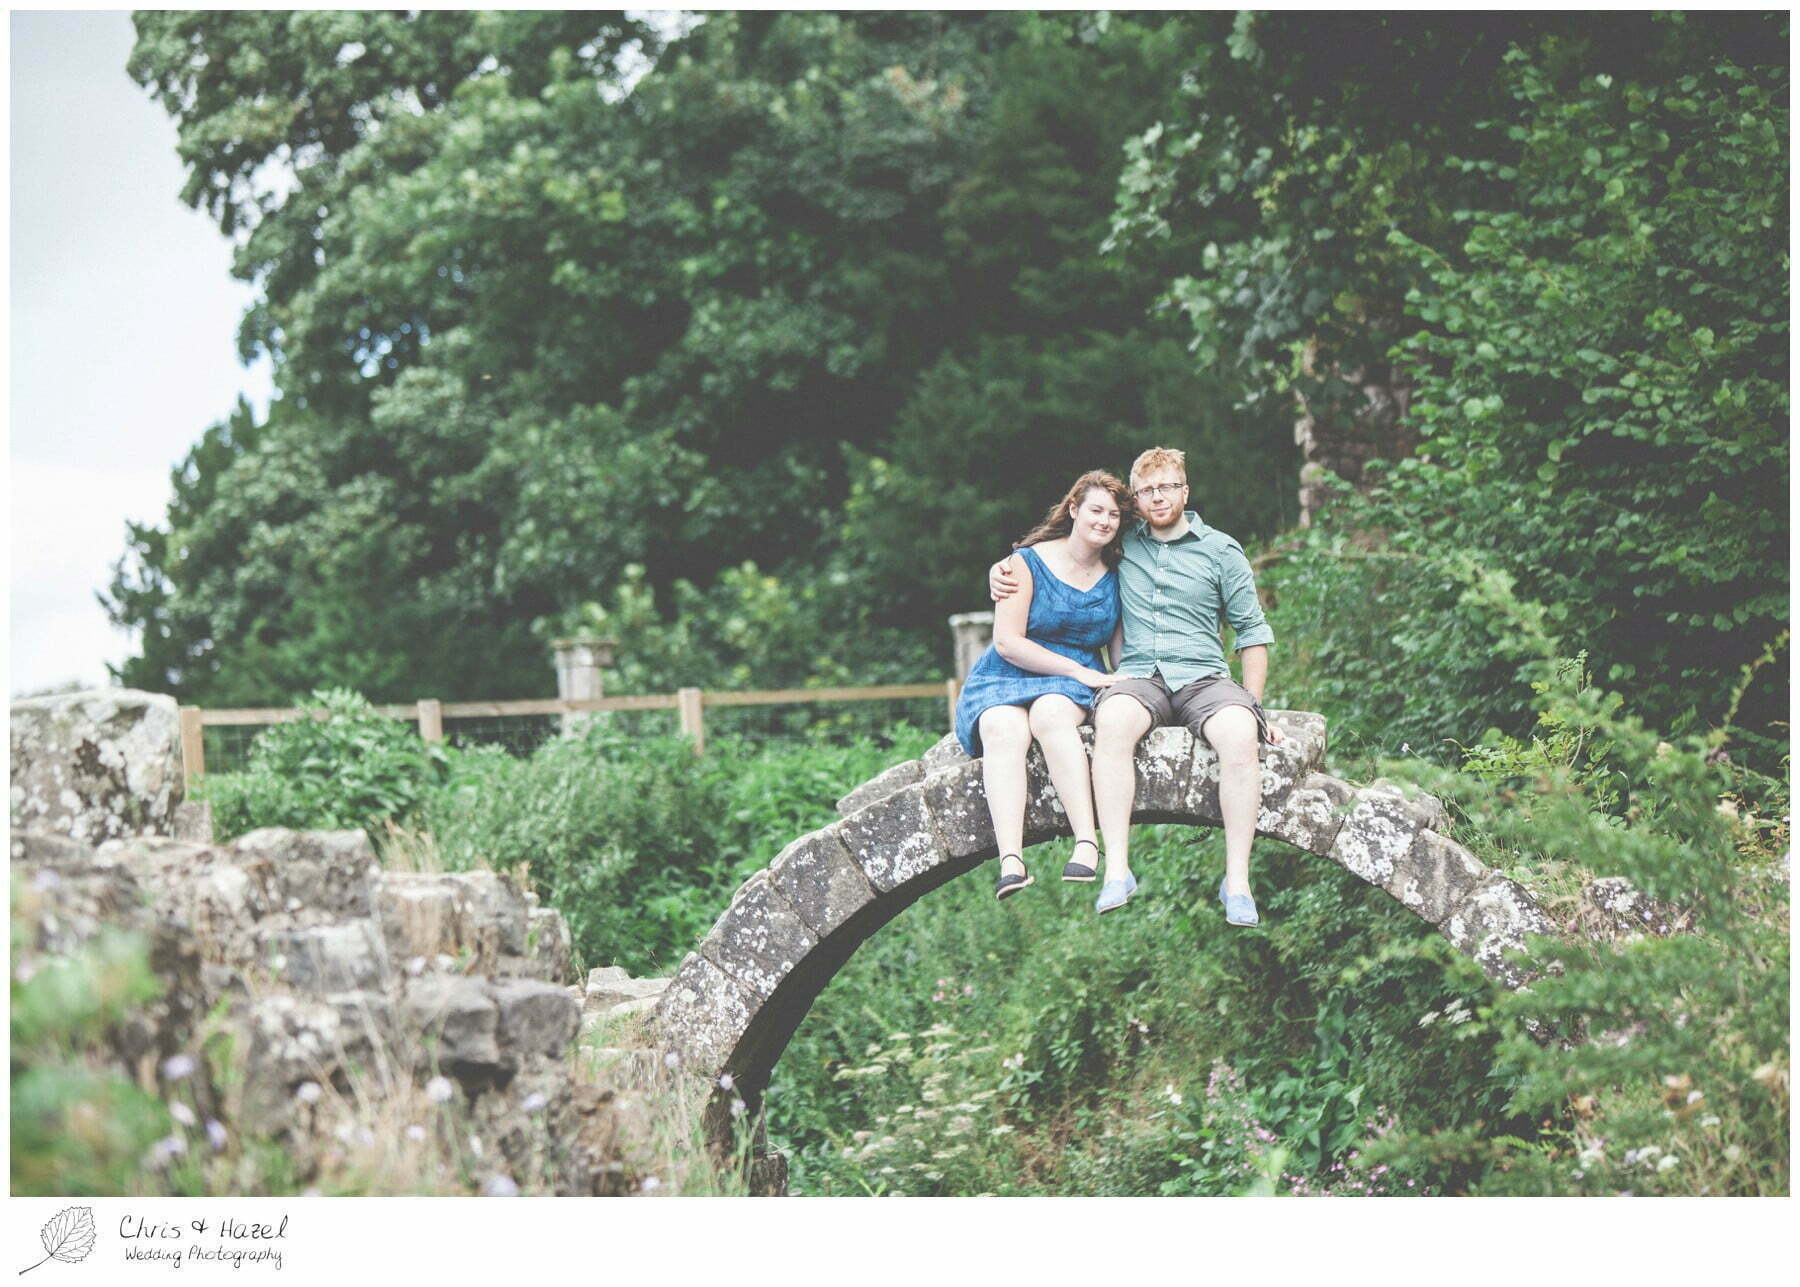 bridge, engagement, dogs, Fountains abbey national trust, Rippon, Fountains Abbey, Pre Wedding Photography Yorkshire, Chris and Hazel Wedding Photography, Sam Nicholson, Emily Nunwick,